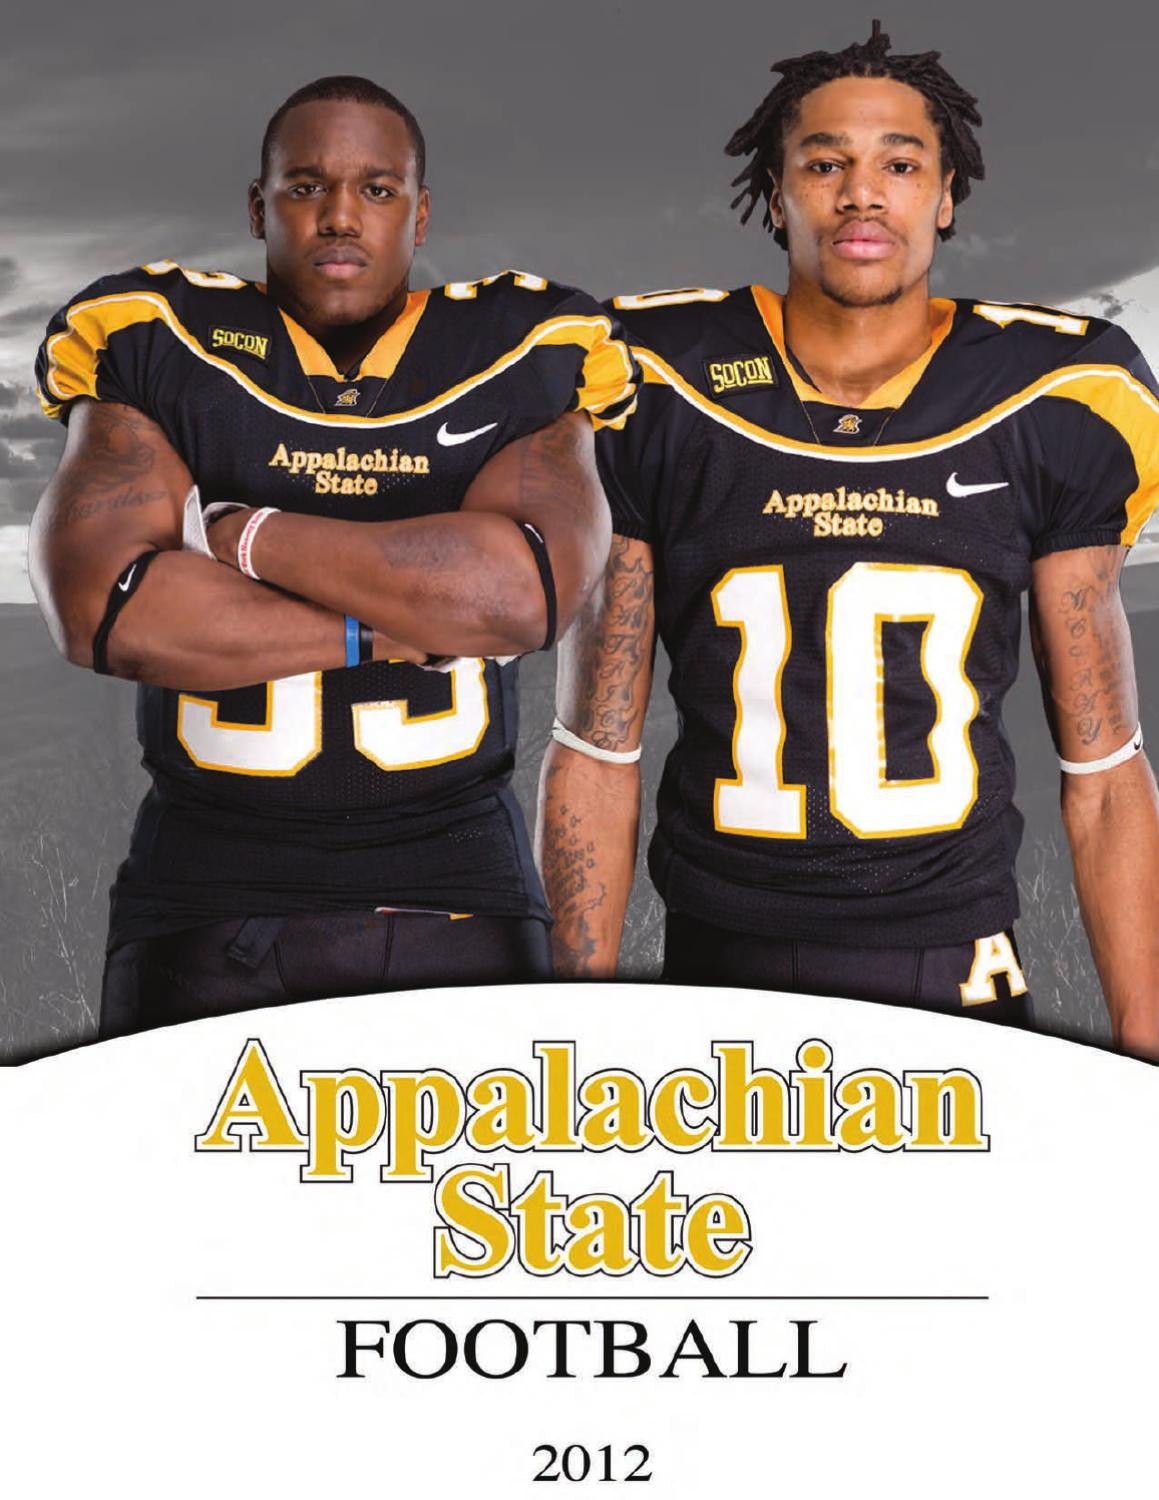 bcc663f7b 2012 Appalachian State Football Online Yearbook by Appalachian State  University Athletics - issuu